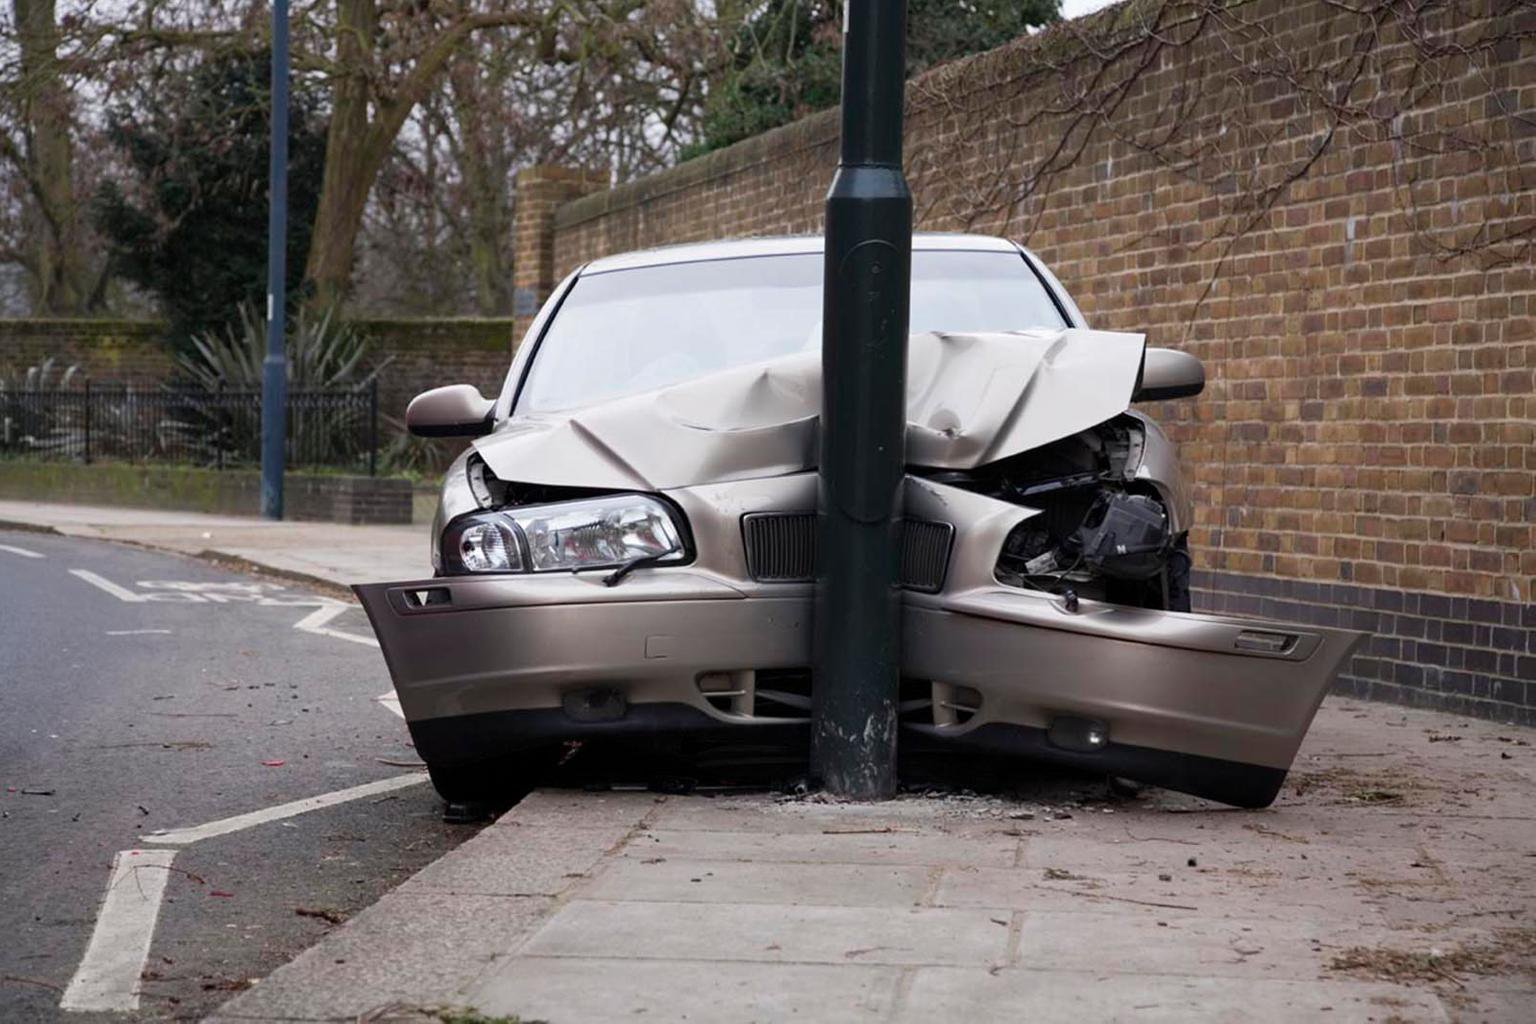 Cost of car insurance grows in the UK